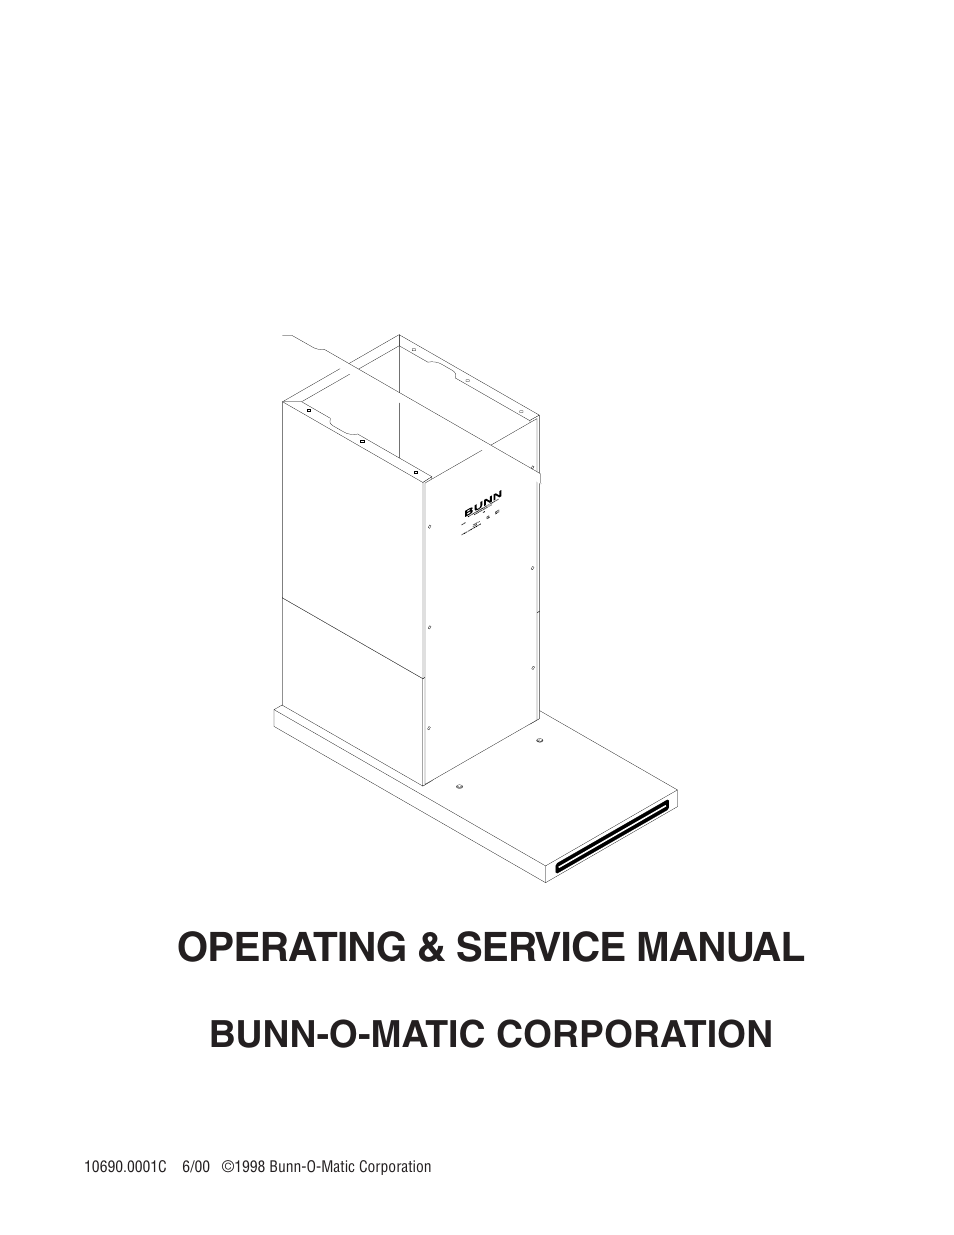 Bunn cw-aps operating & service manual pdf download.